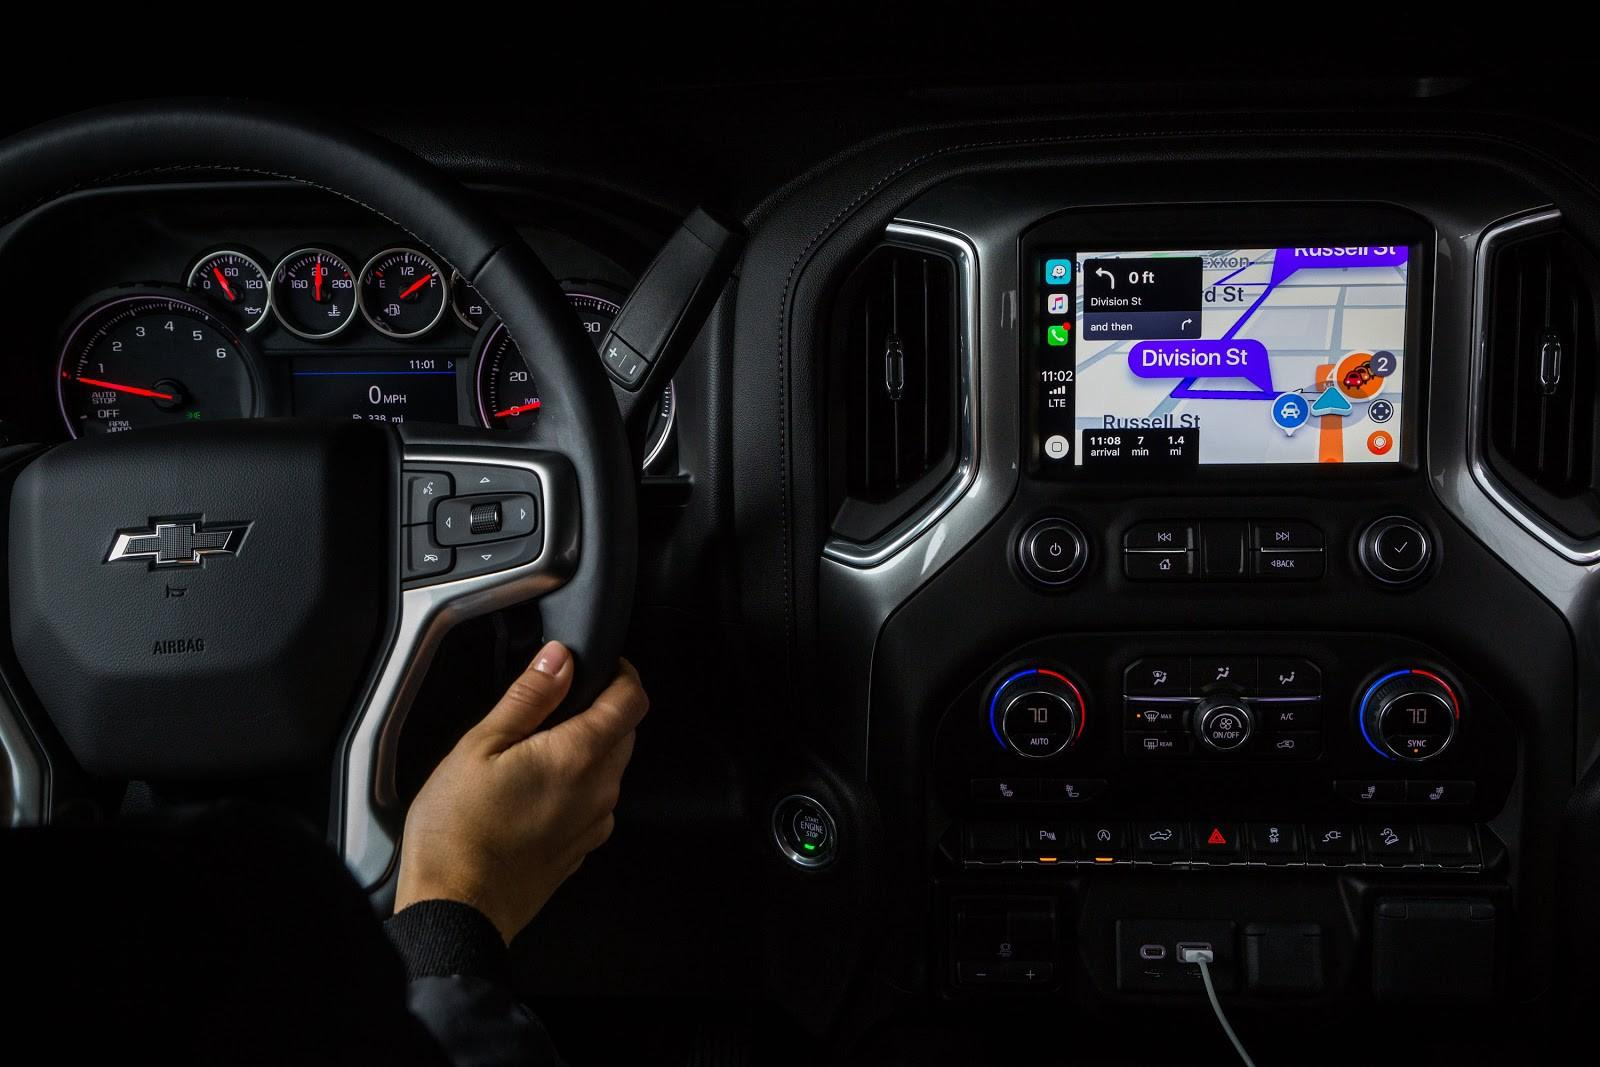 Waze for Apple CarPlay released with easy reporting - SlashGear